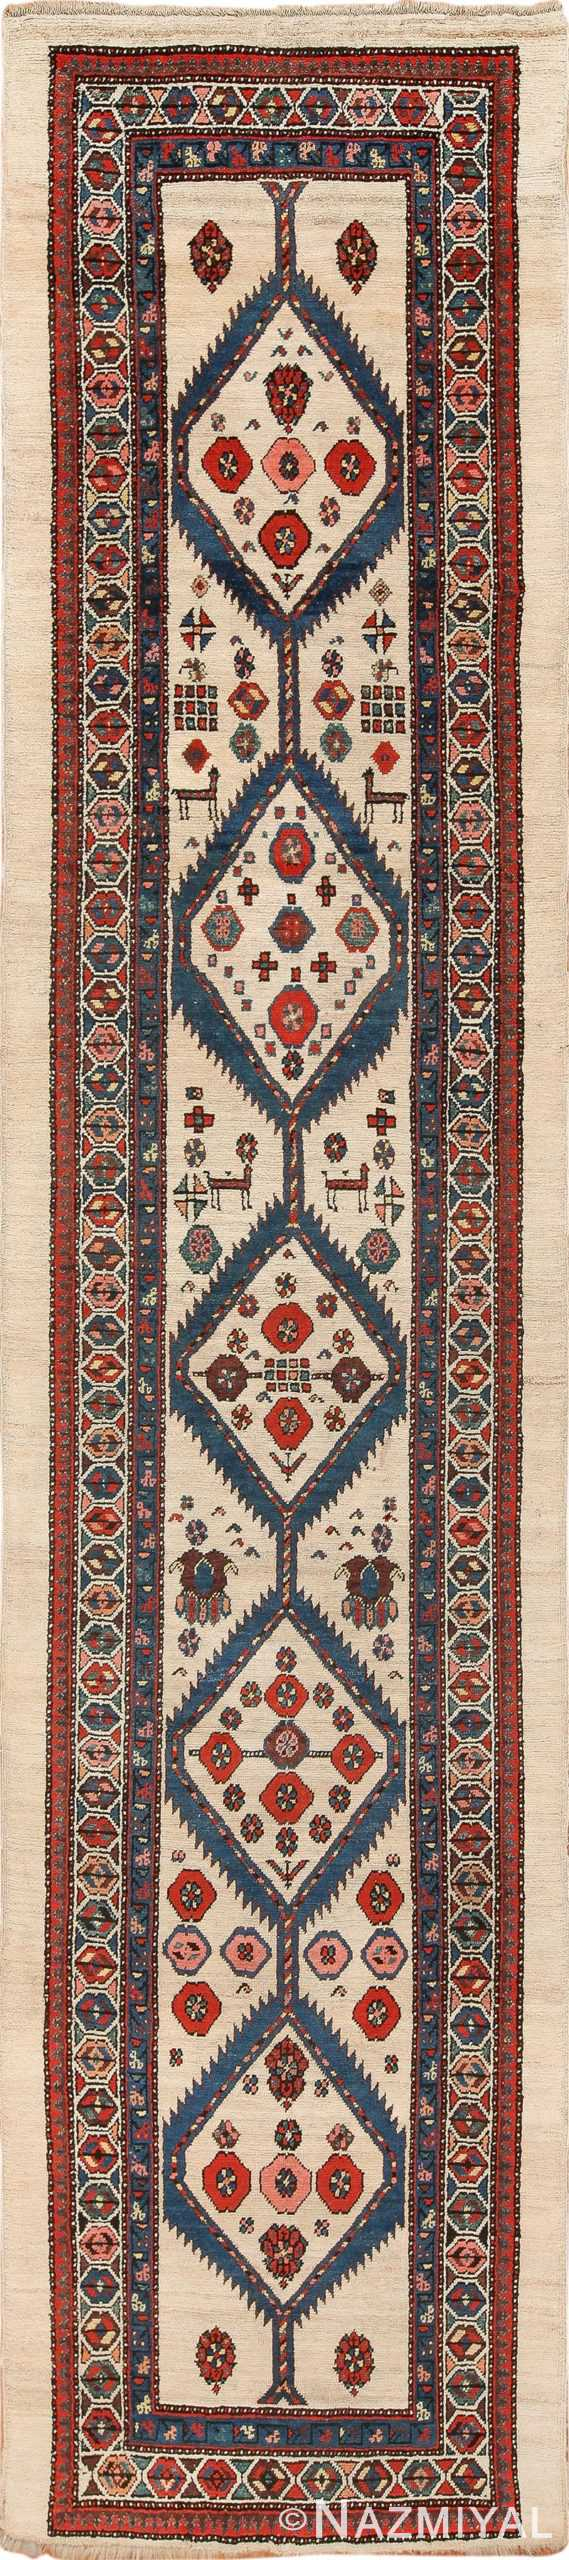 Ivory Tribal Antique Persian Serab Runner Rug 49769 - Nazmiyal